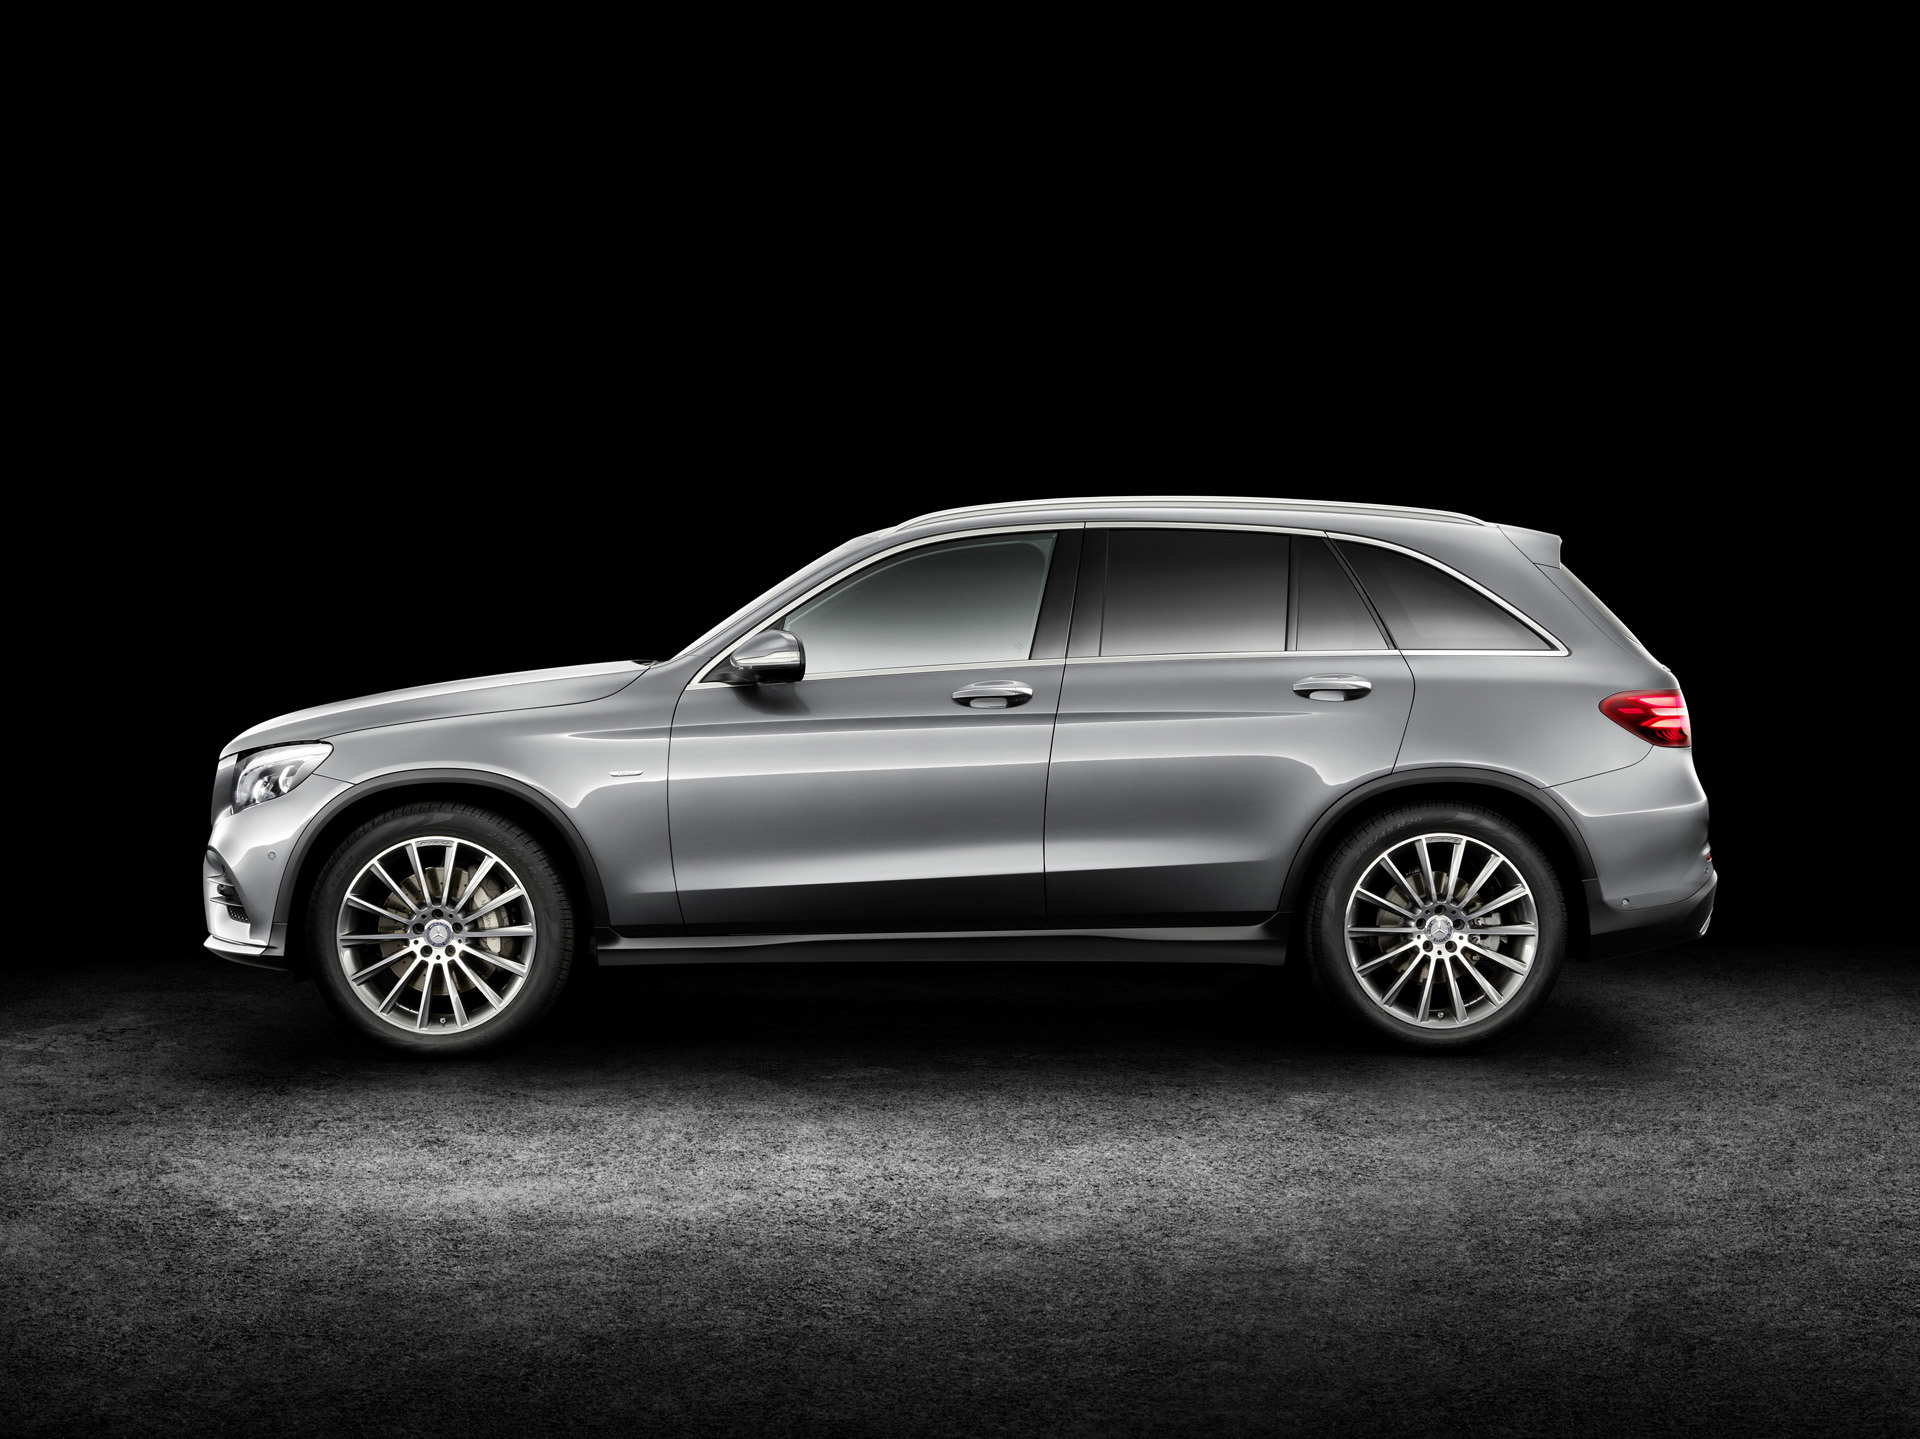 Mercedes benz glc x 253 2015 egmcartech for 2014 mercedes benz glc